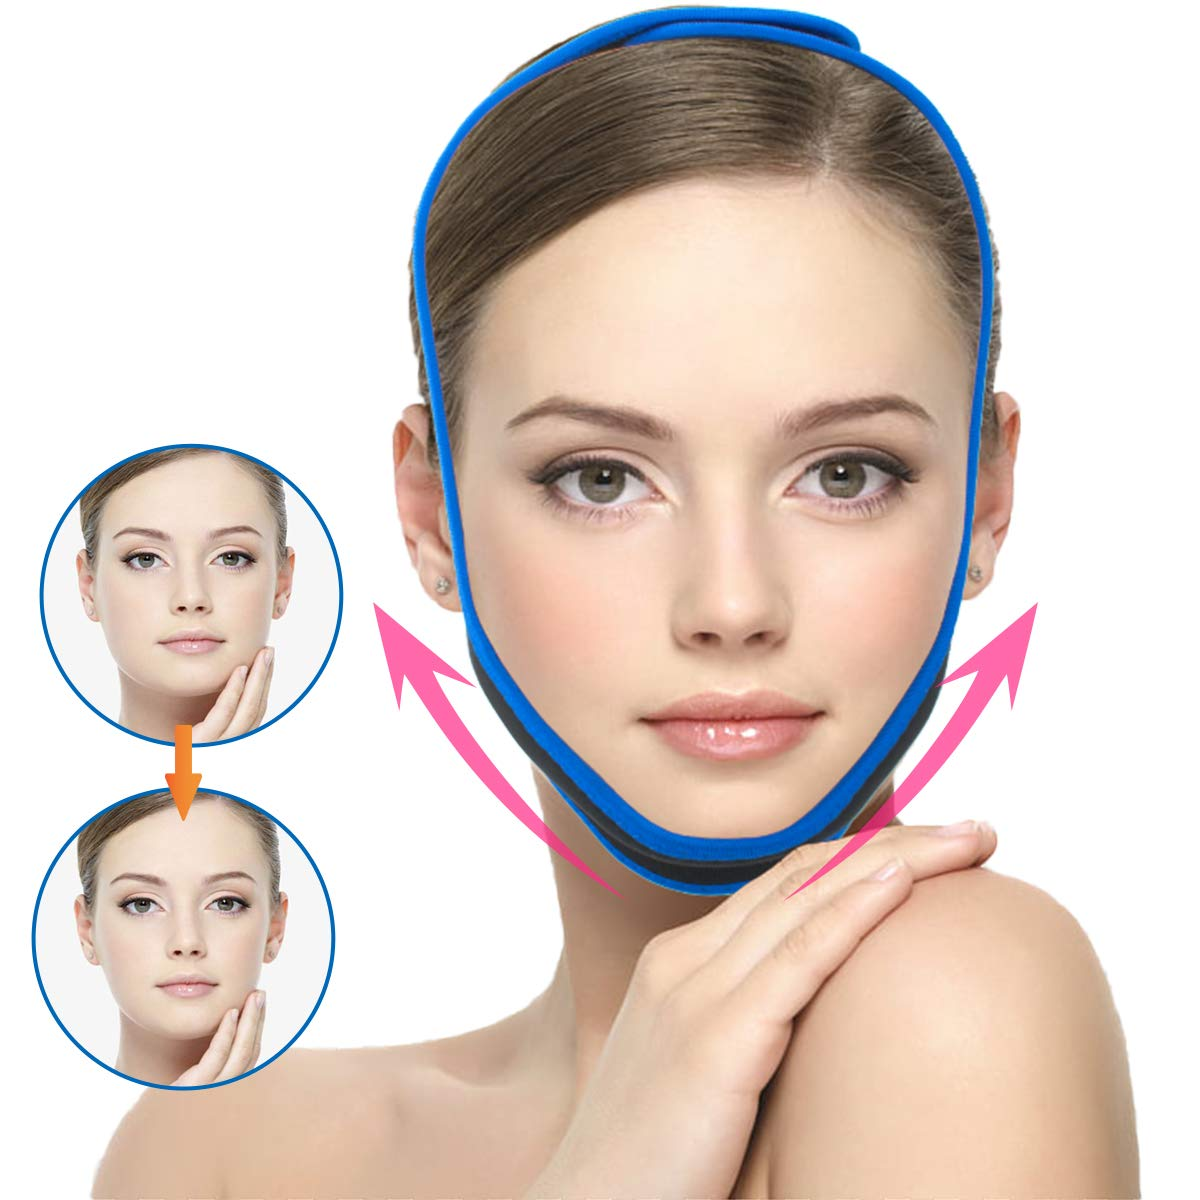 Facial Slimming Max 68% OFF Strap Chin Up San Francisco Mall Double Reducer Patch Face Lif